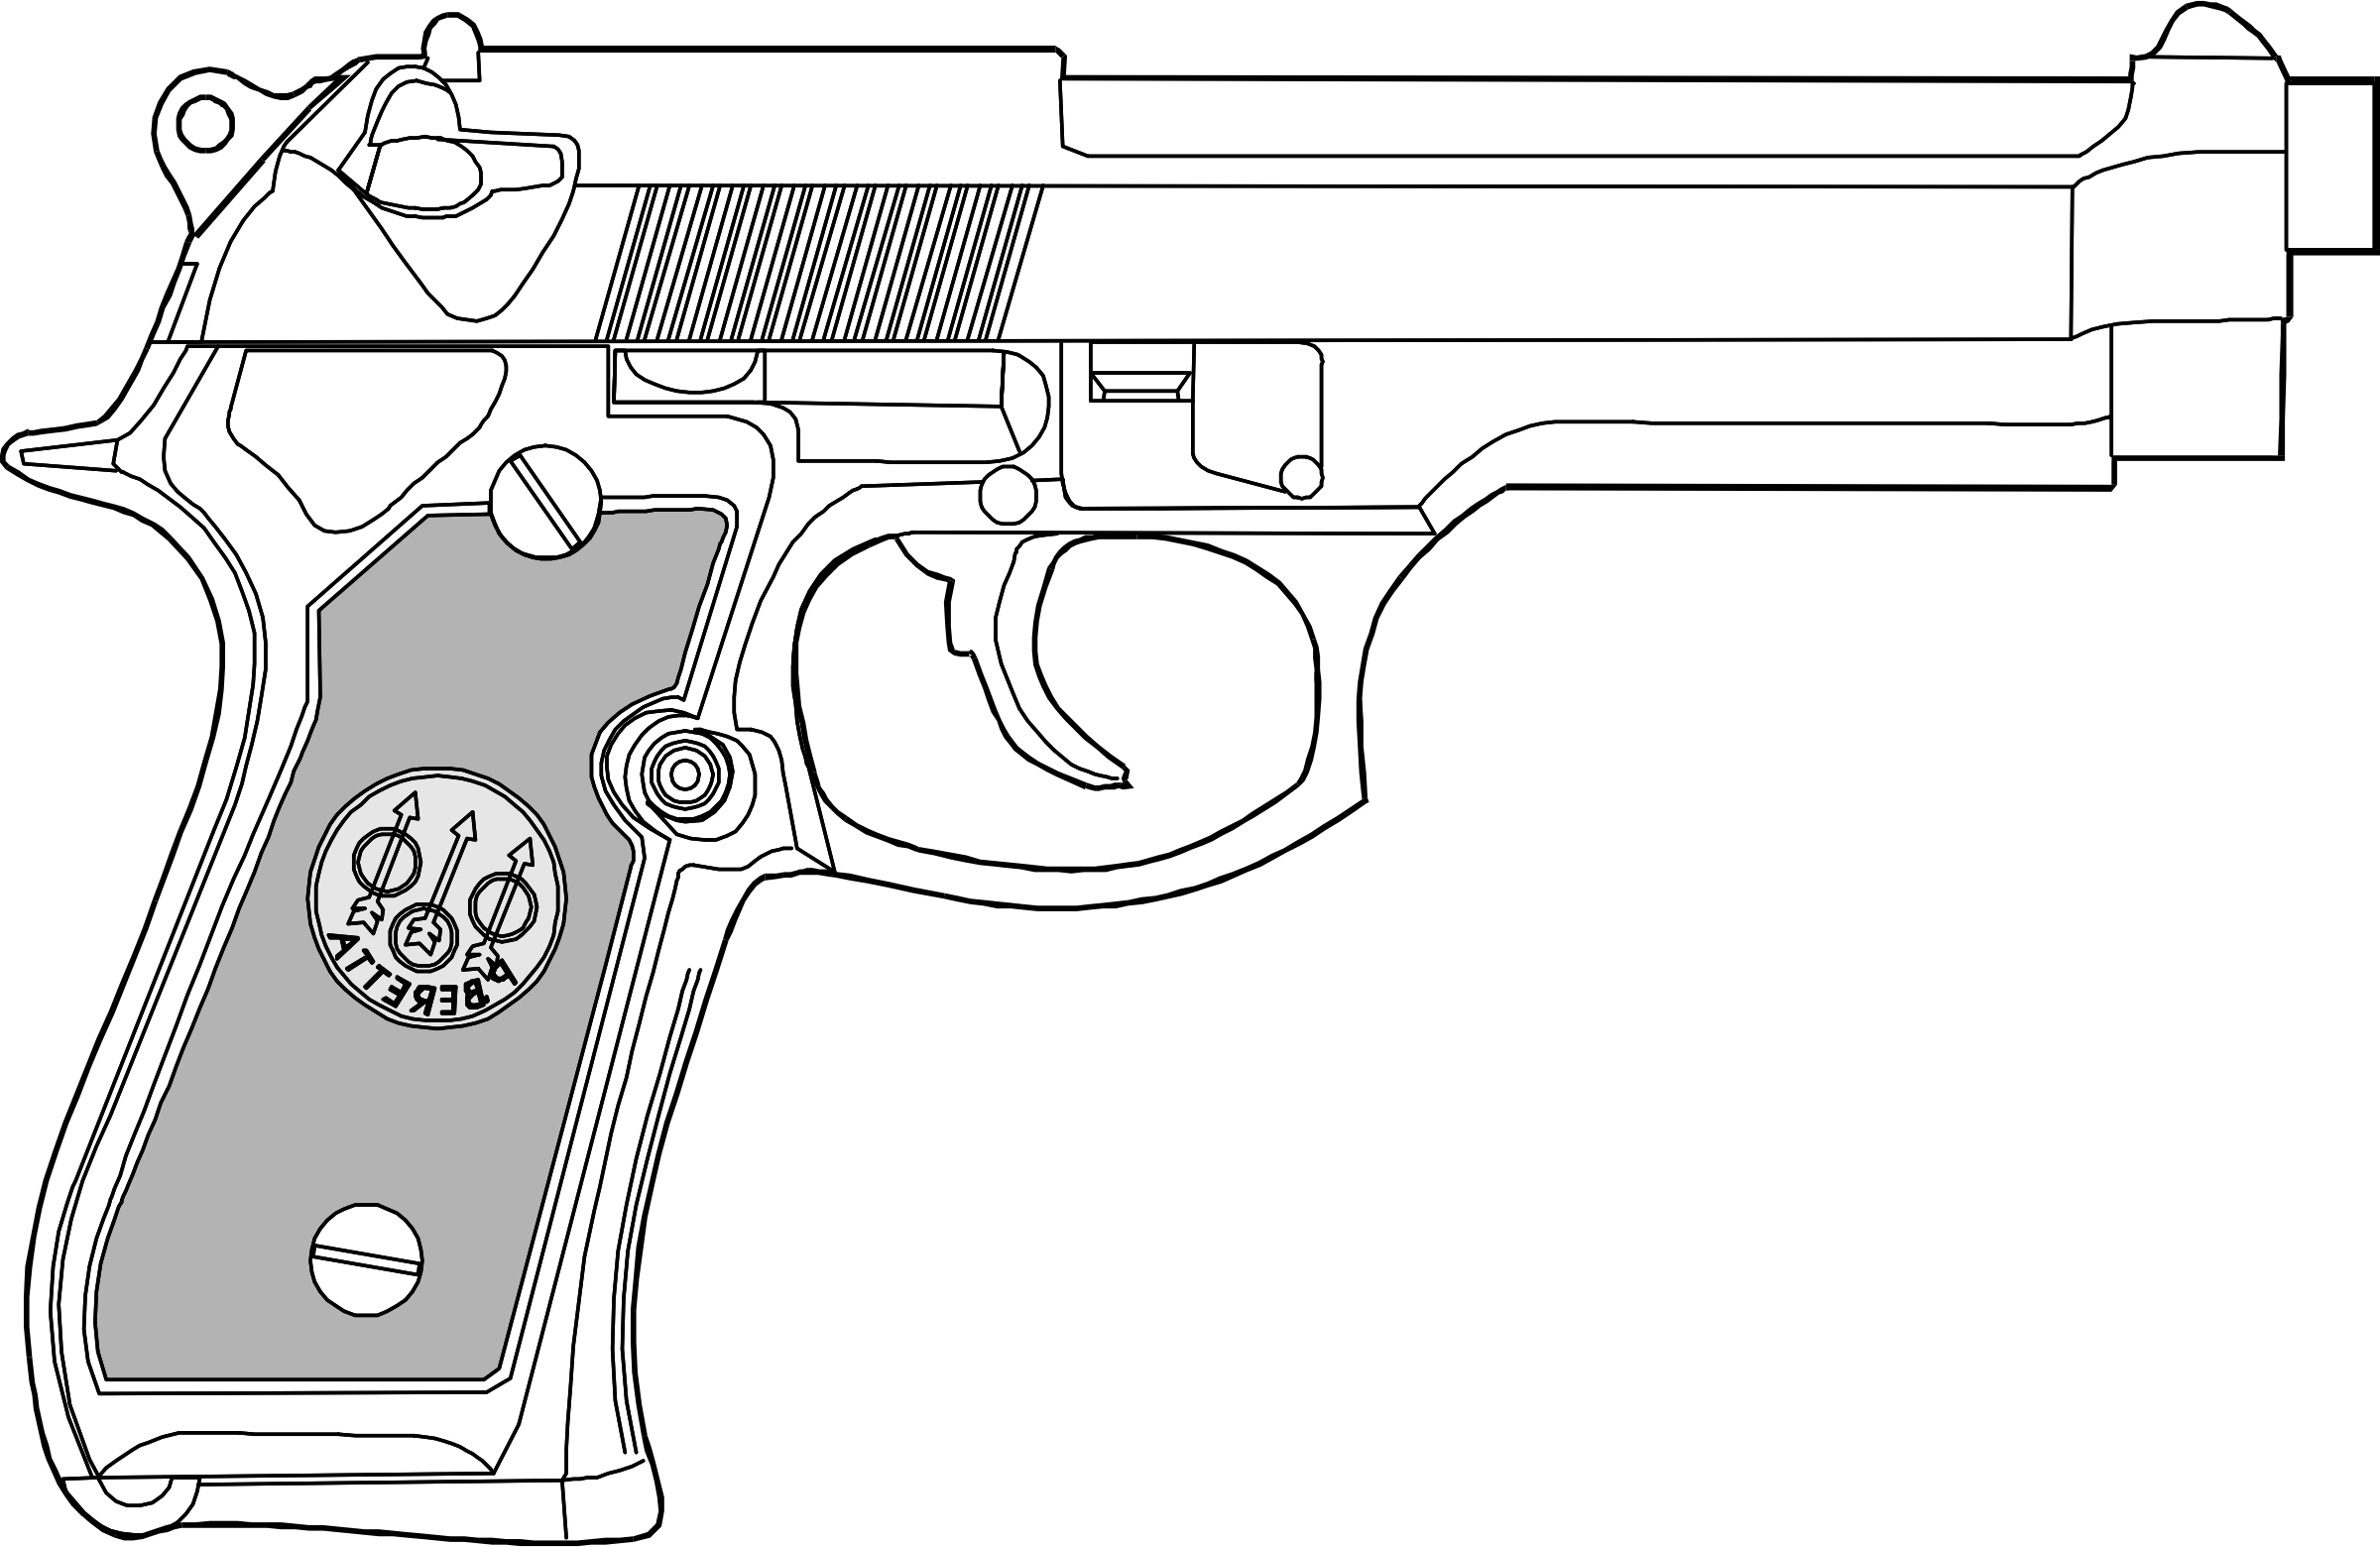 9mm pistol by Anonymous